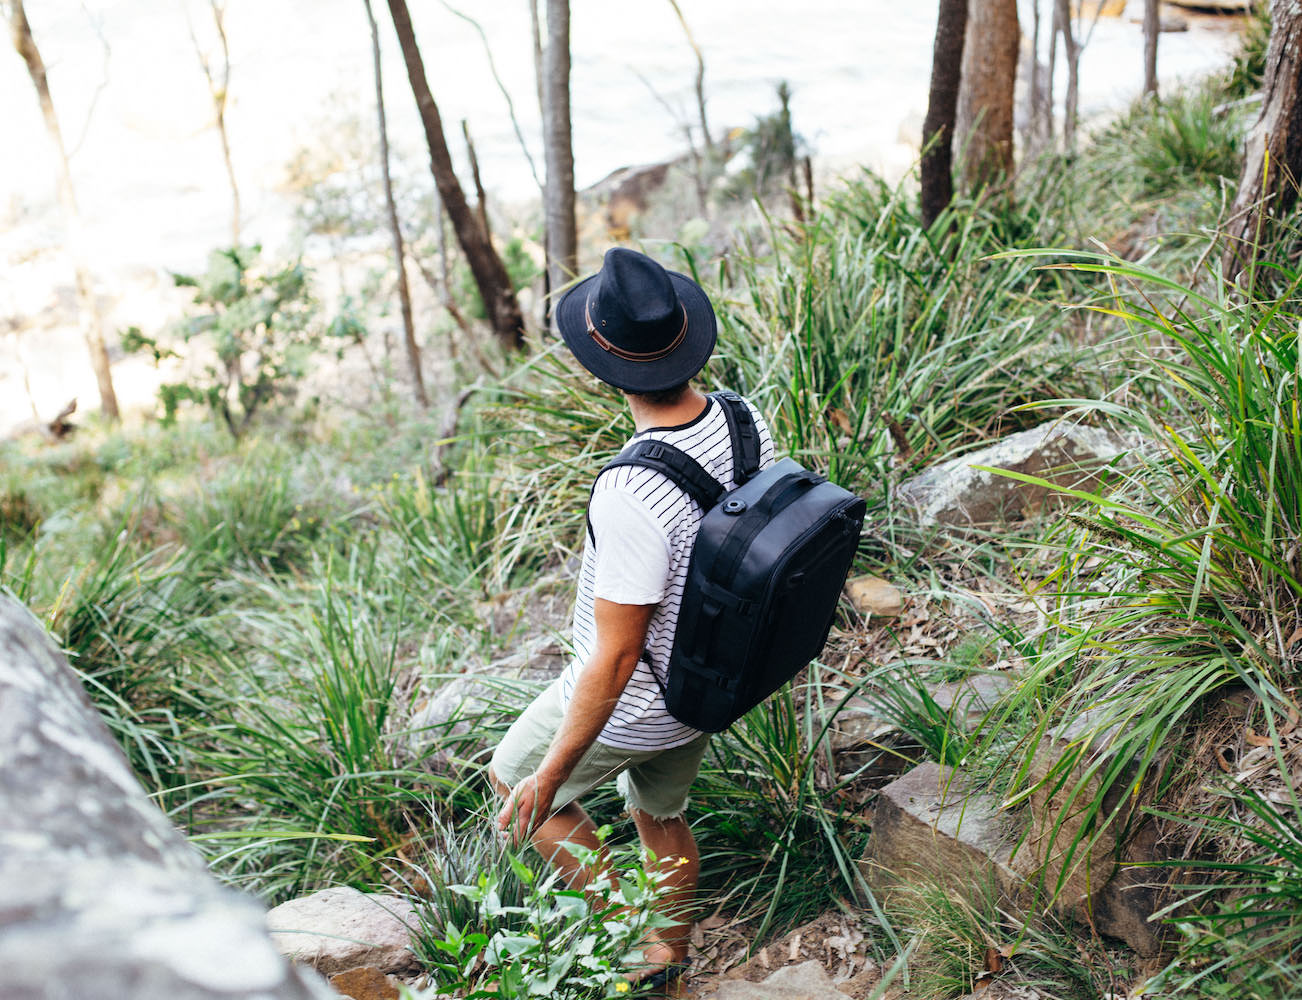 GOBAG+%26%238211%3B+The+Ultimate+Carry-On+Duffel+Bag+For+Any+Adventure